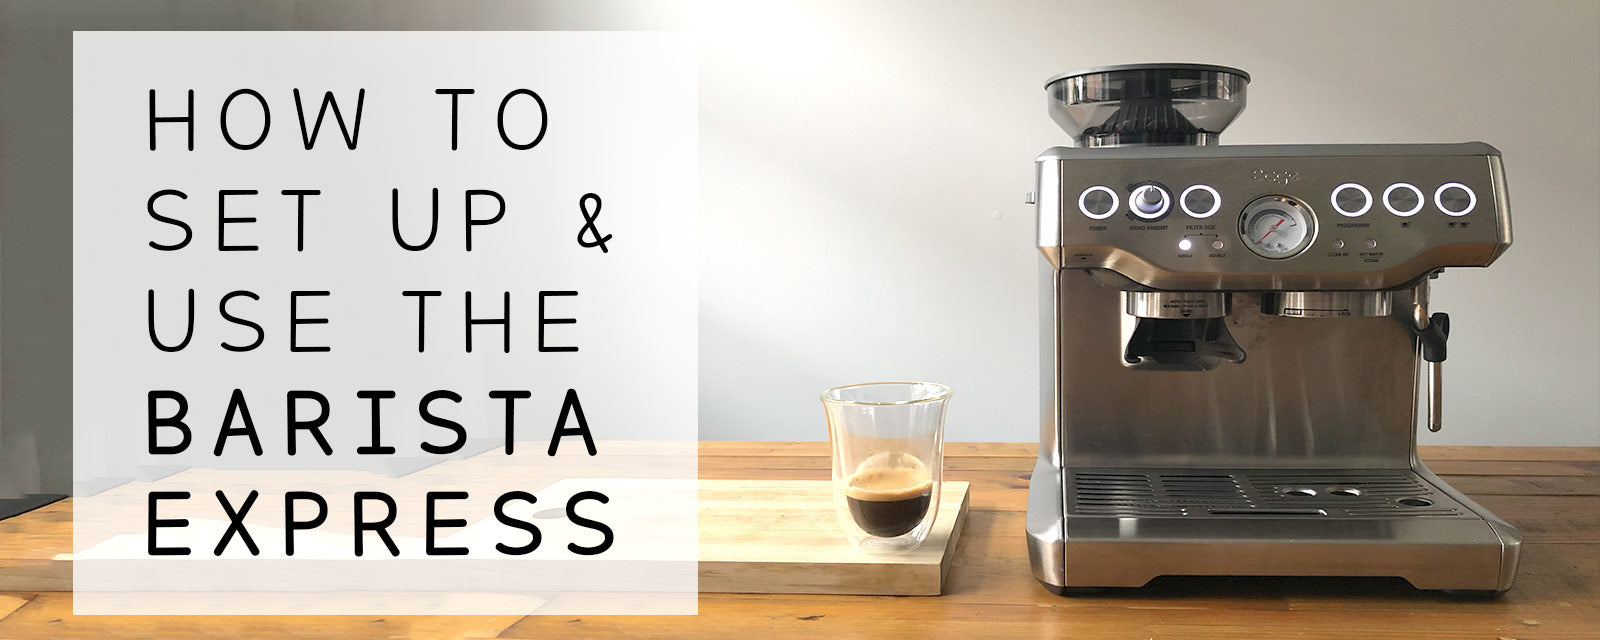 How to set up and make great coffee with Barista Express